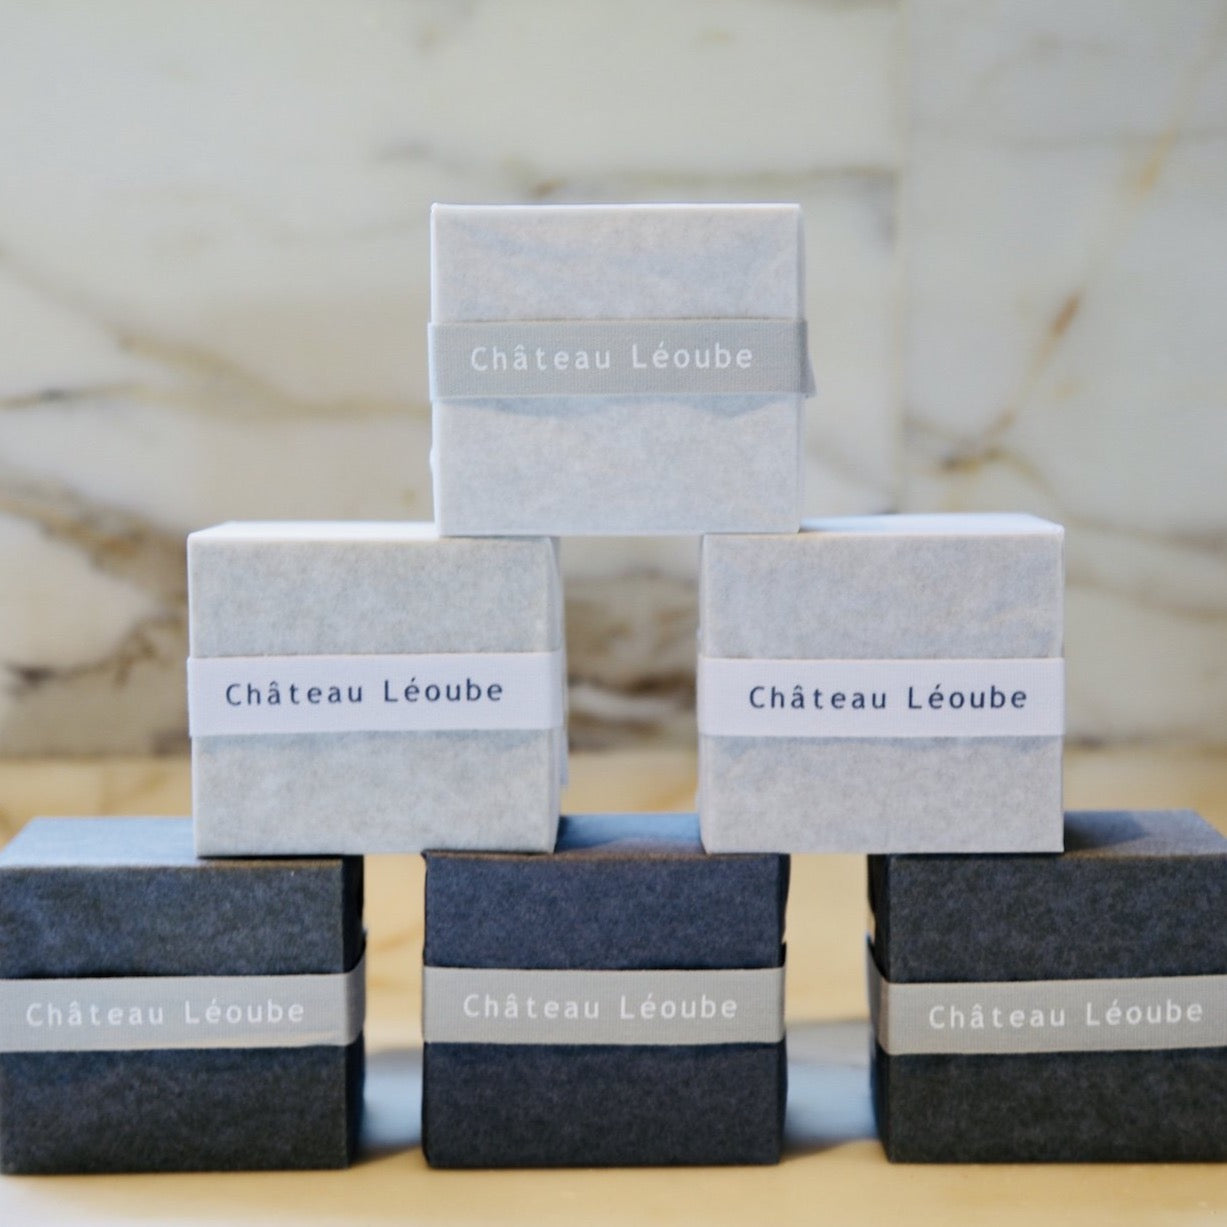 Chateau Leoube Soap wrapped in a white and black paper.